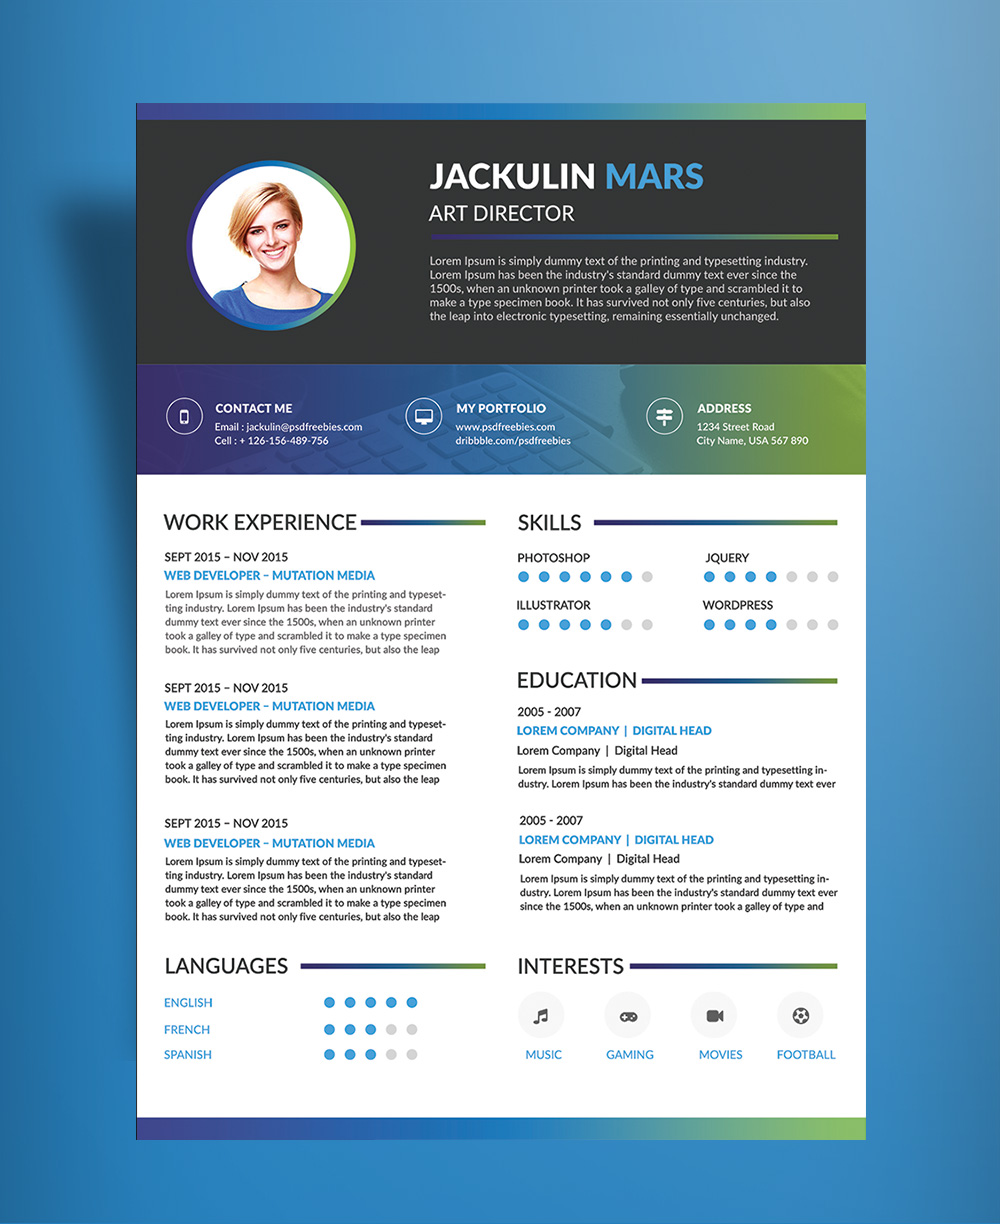 Beautiful Resume (CV) Design Template Free PSD File (2)